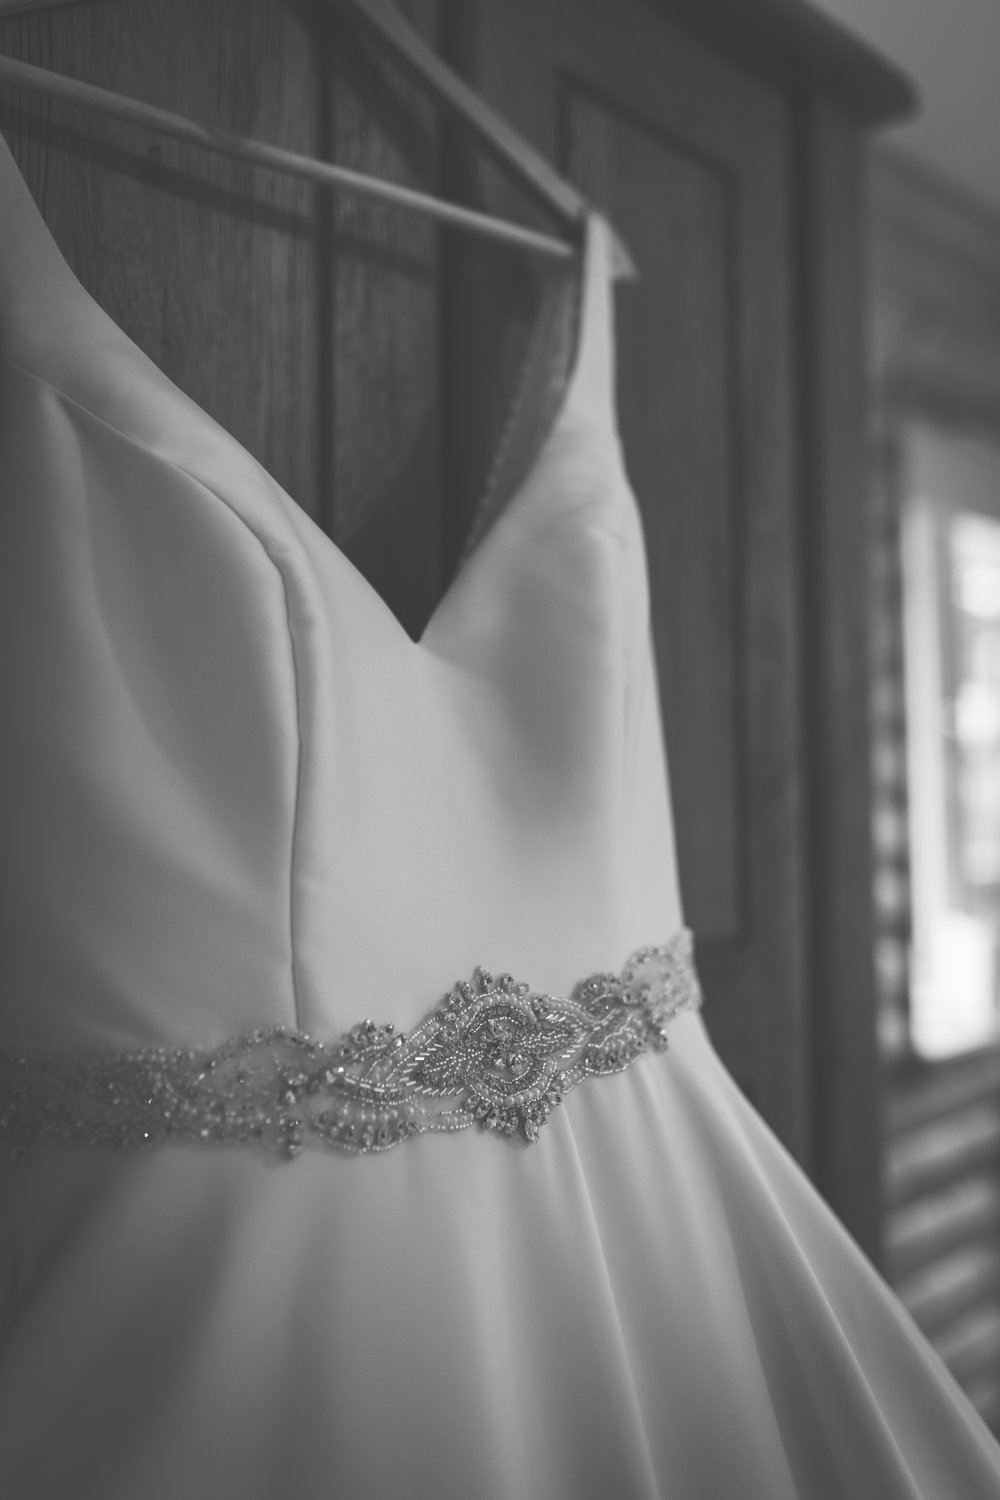 A close up black and white photograph of a wedding dress